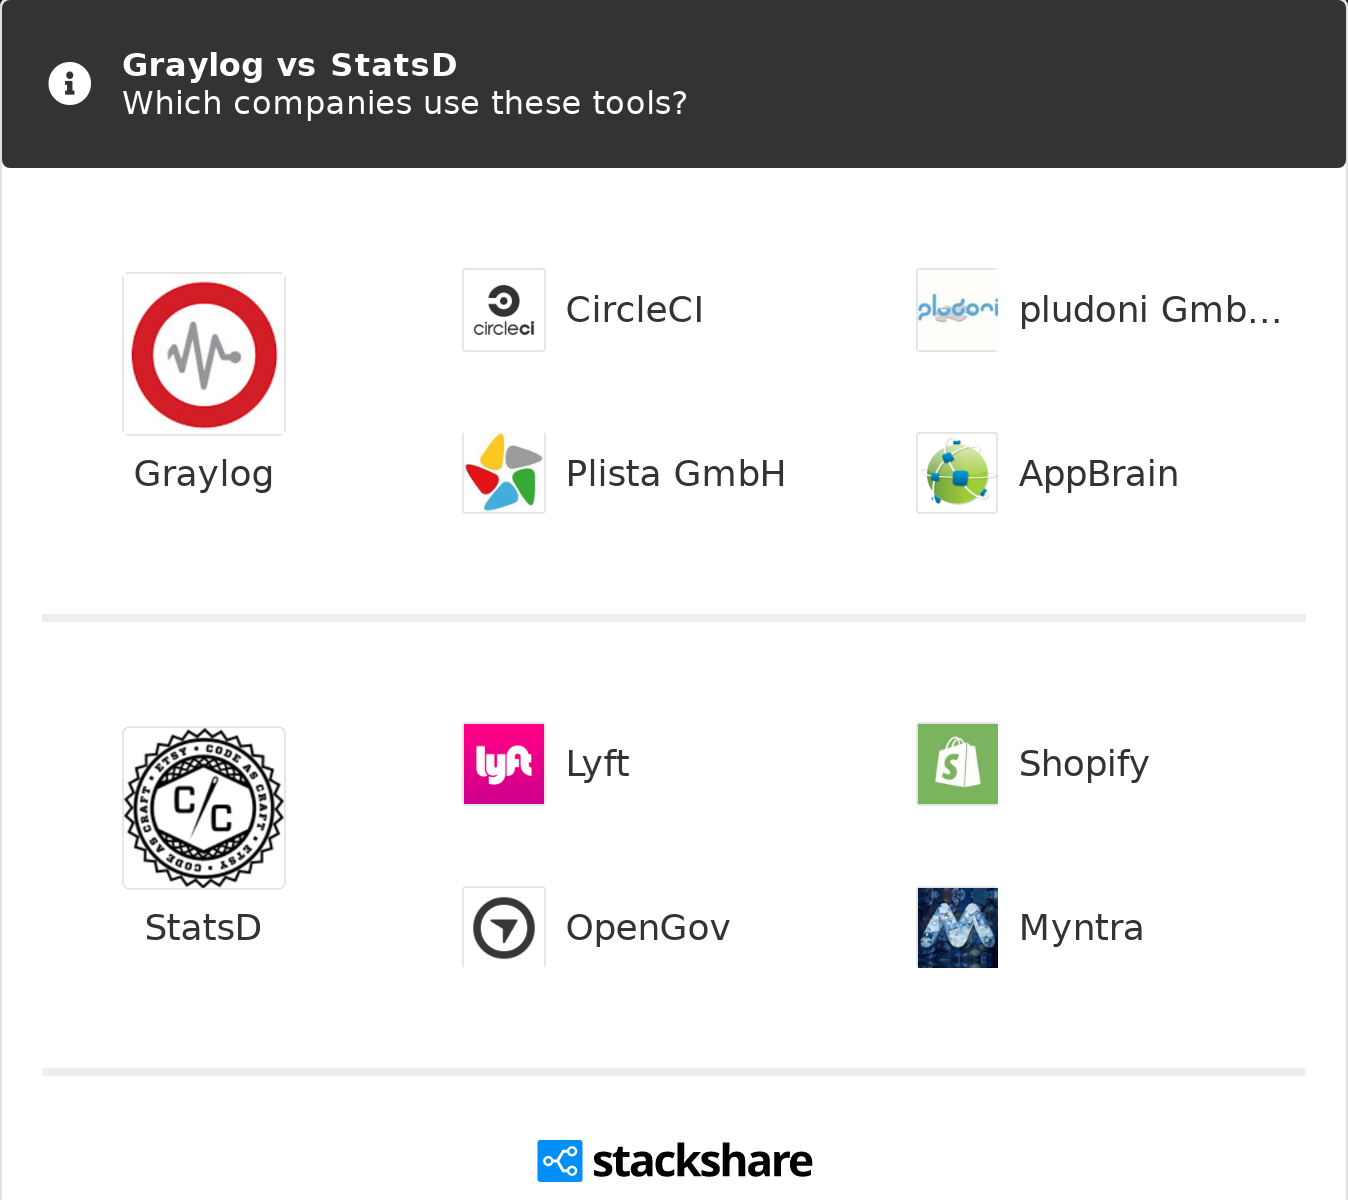 Graylog vs StatsD | What are the differences?